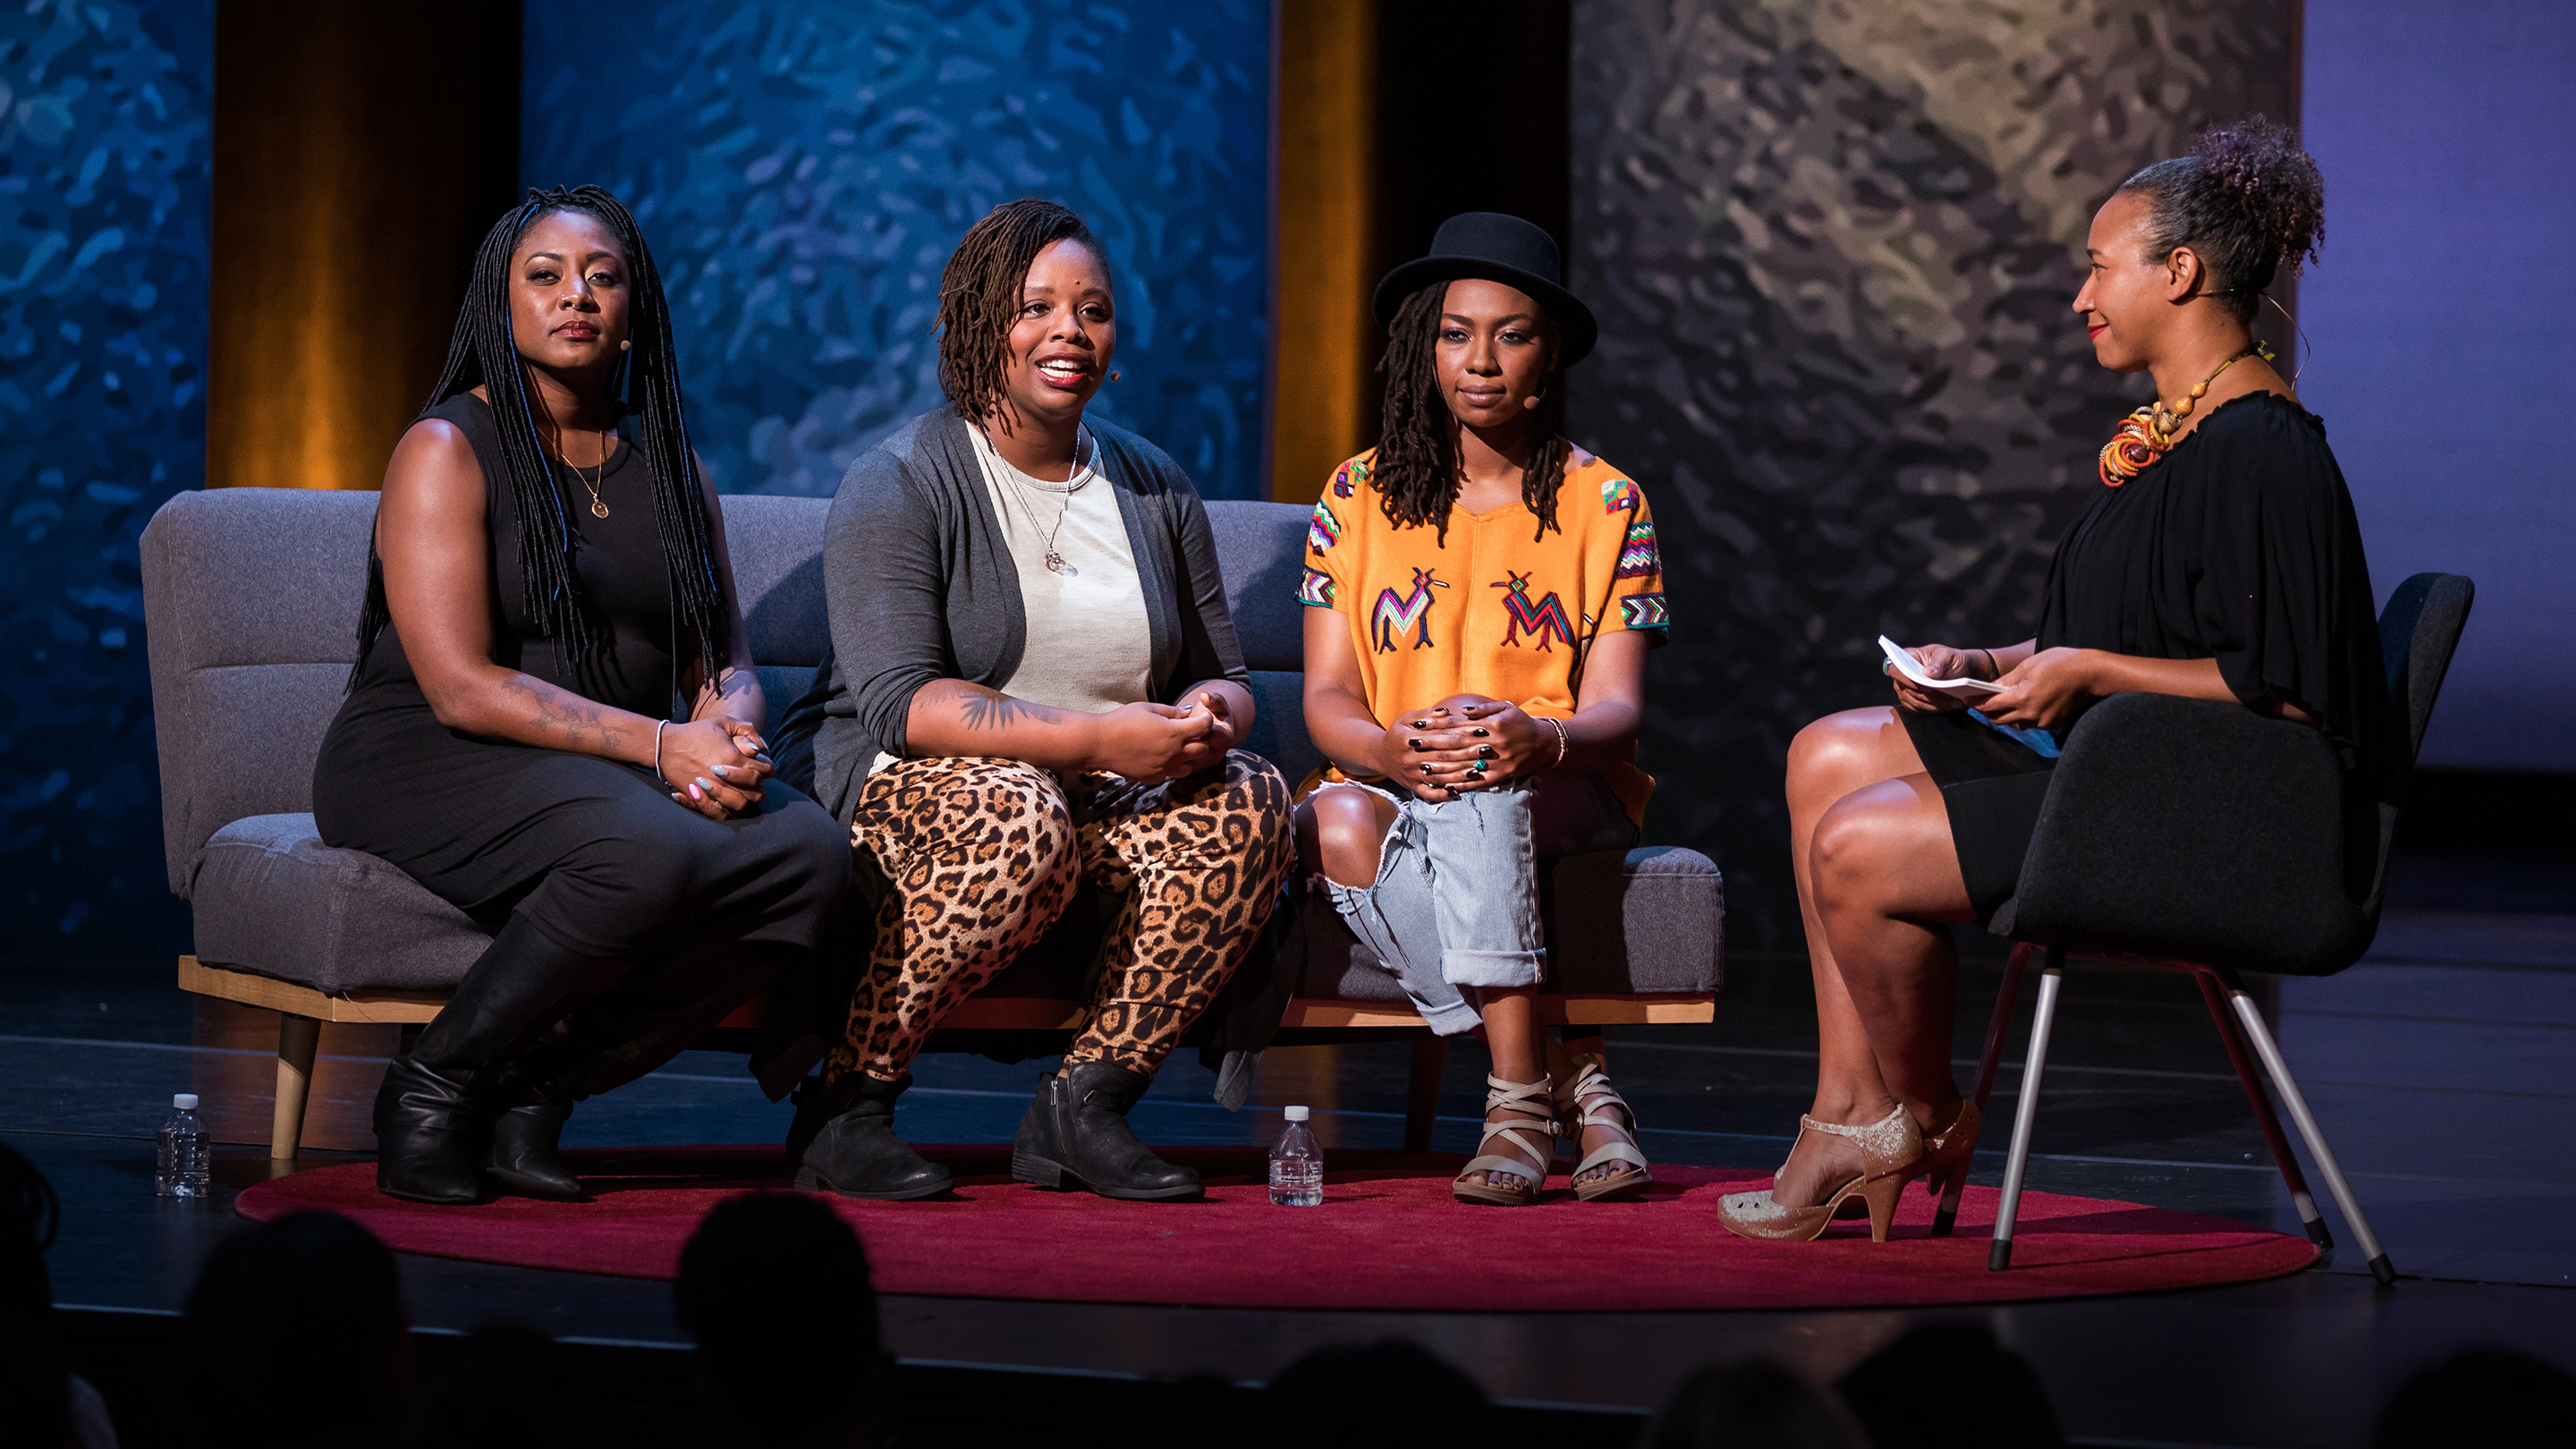 Alicia Garza, Patrisse Cullors, and Opal Tometi: An Interview with the Founders of Black Lives Matter